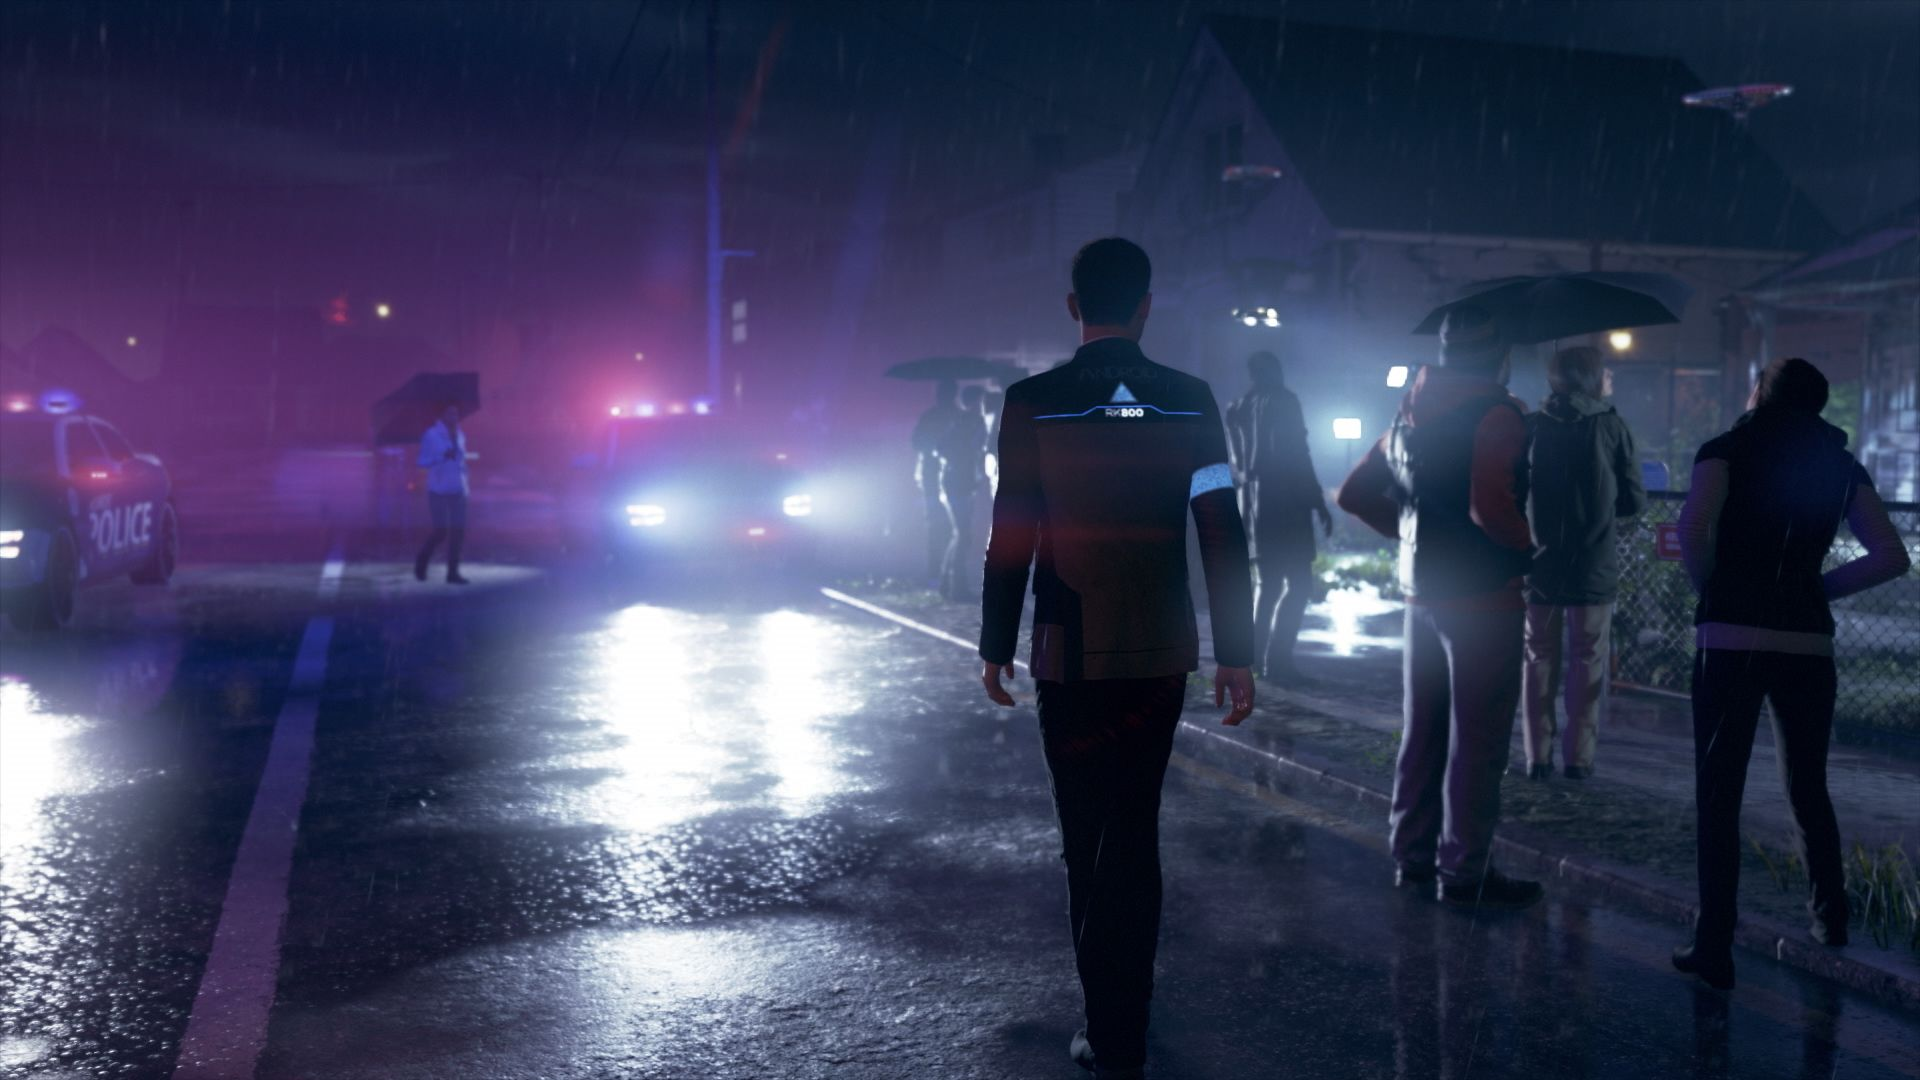 Detroit Become Human Hd Wallpaper: Detroit: Become Human Video Game Preview: A Stunning Demo